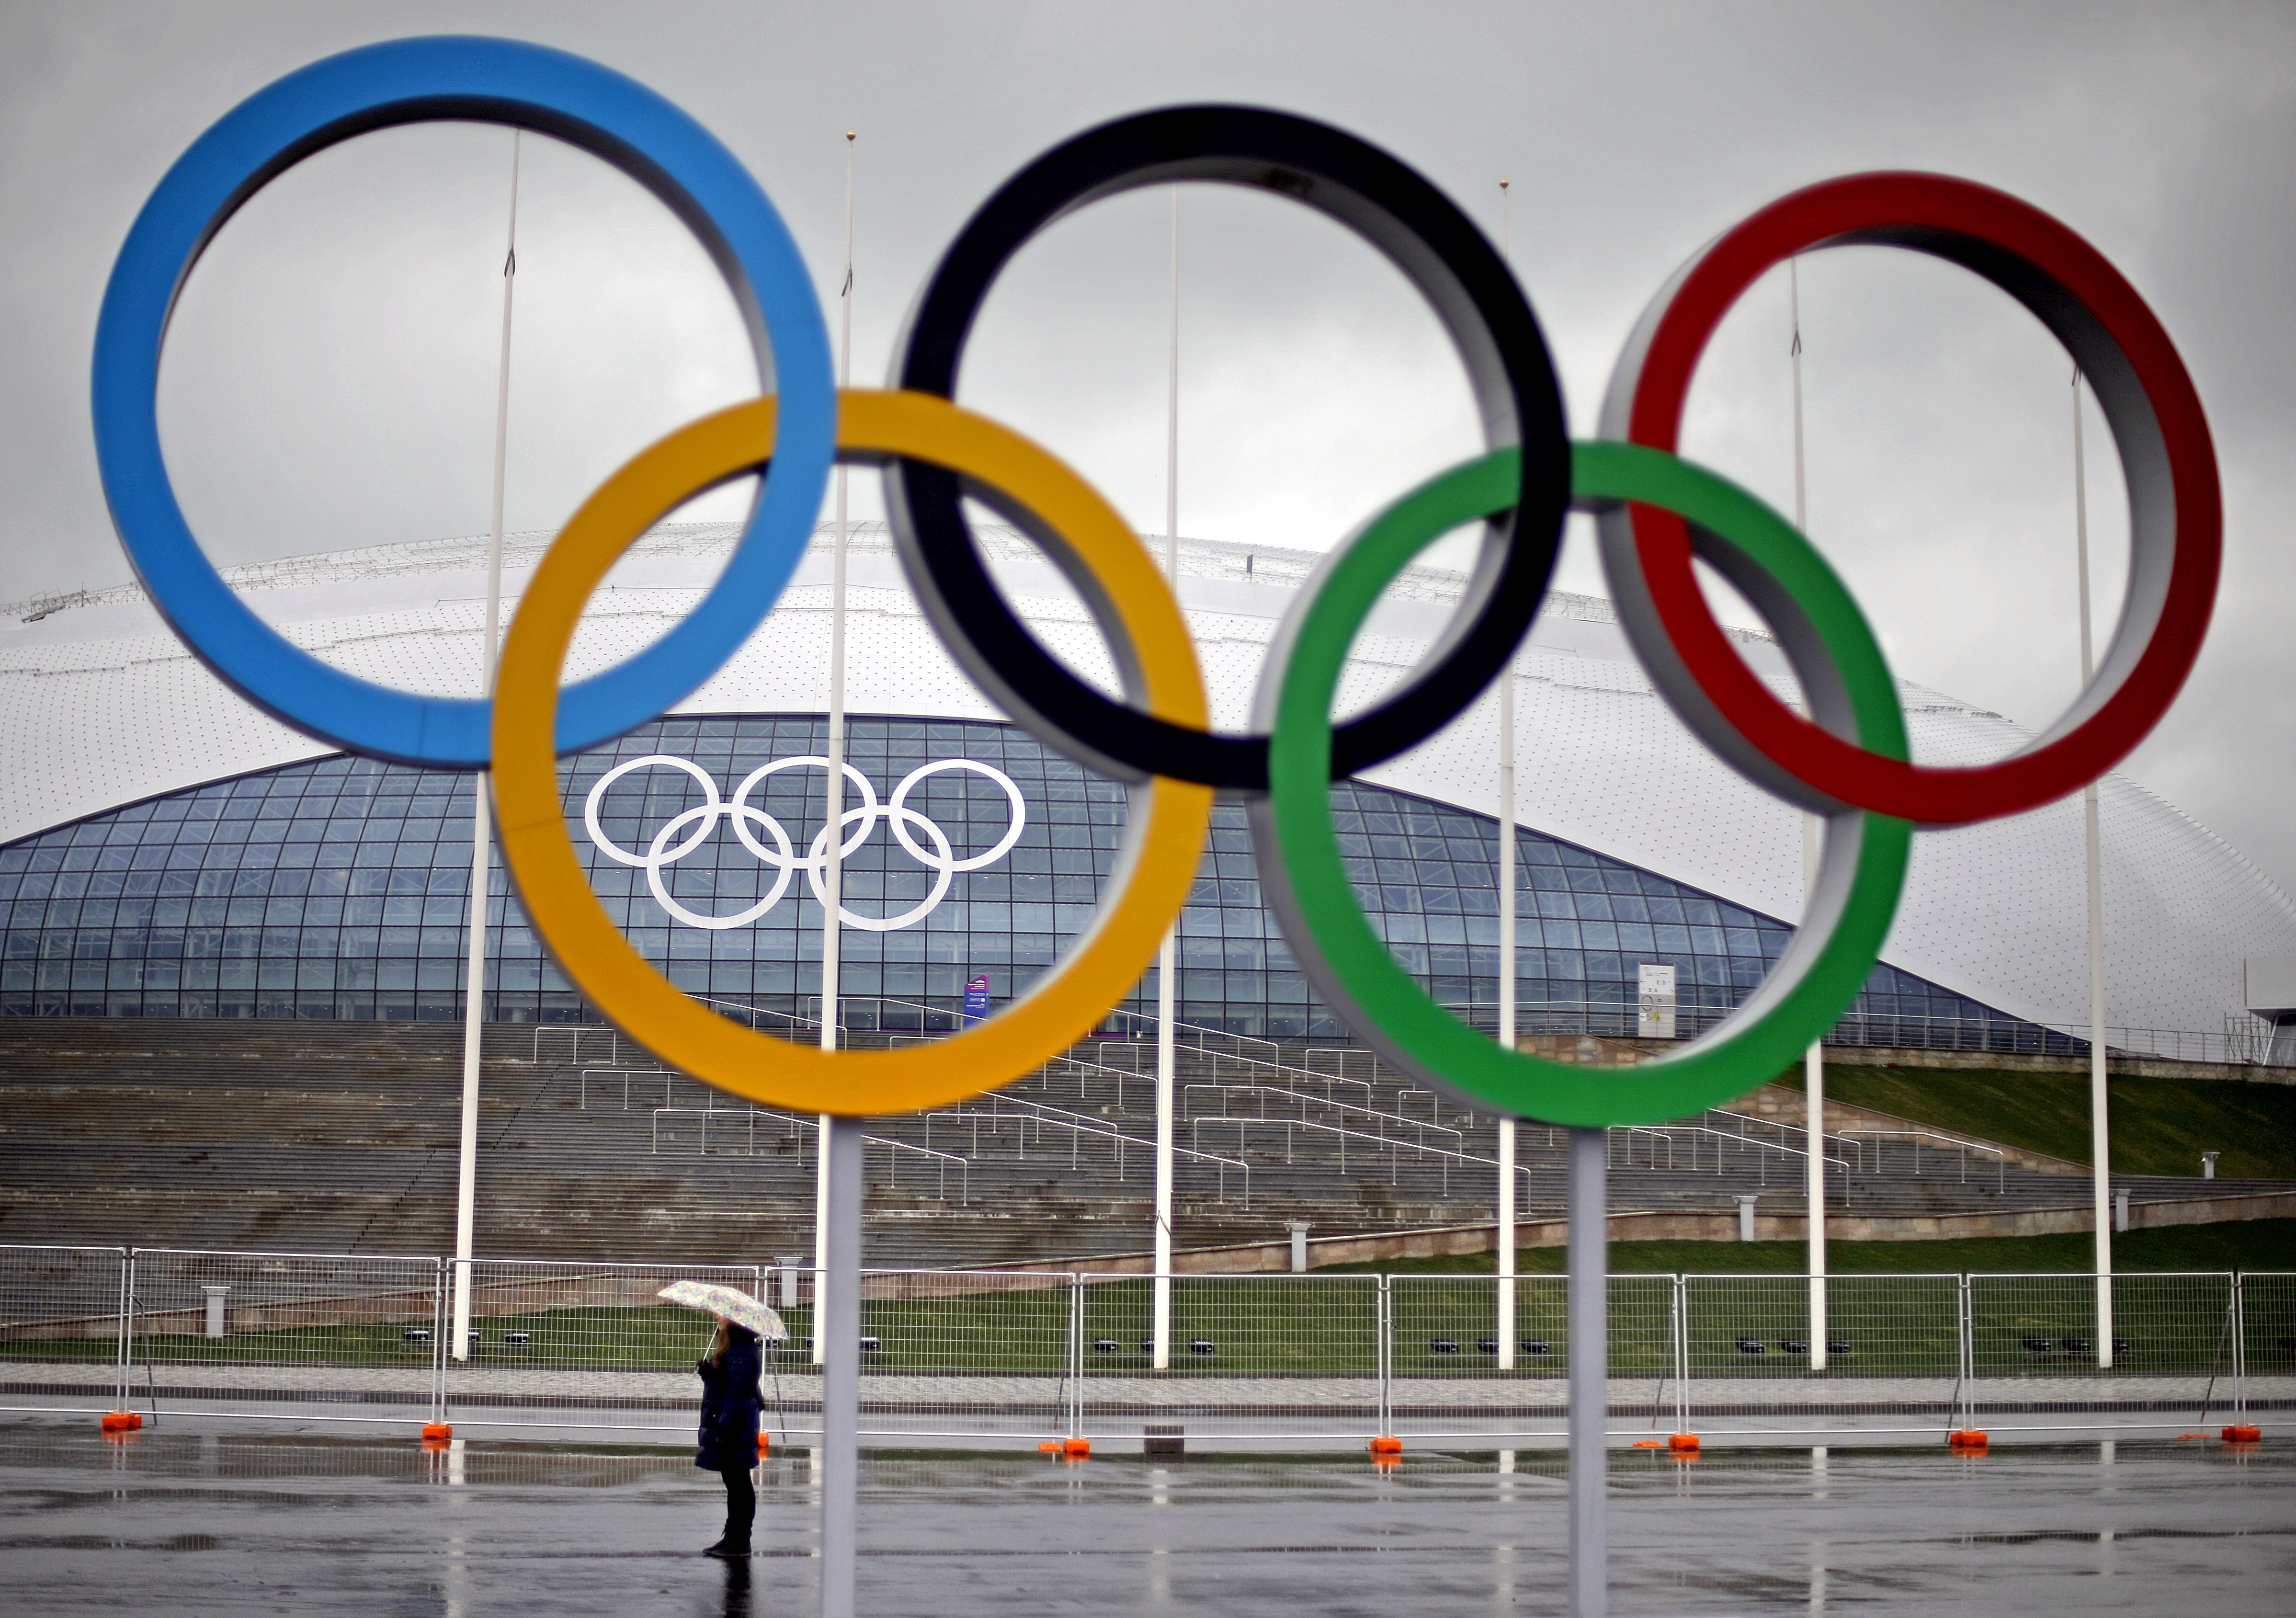 Russian activists sue Sochi organizers over access to games